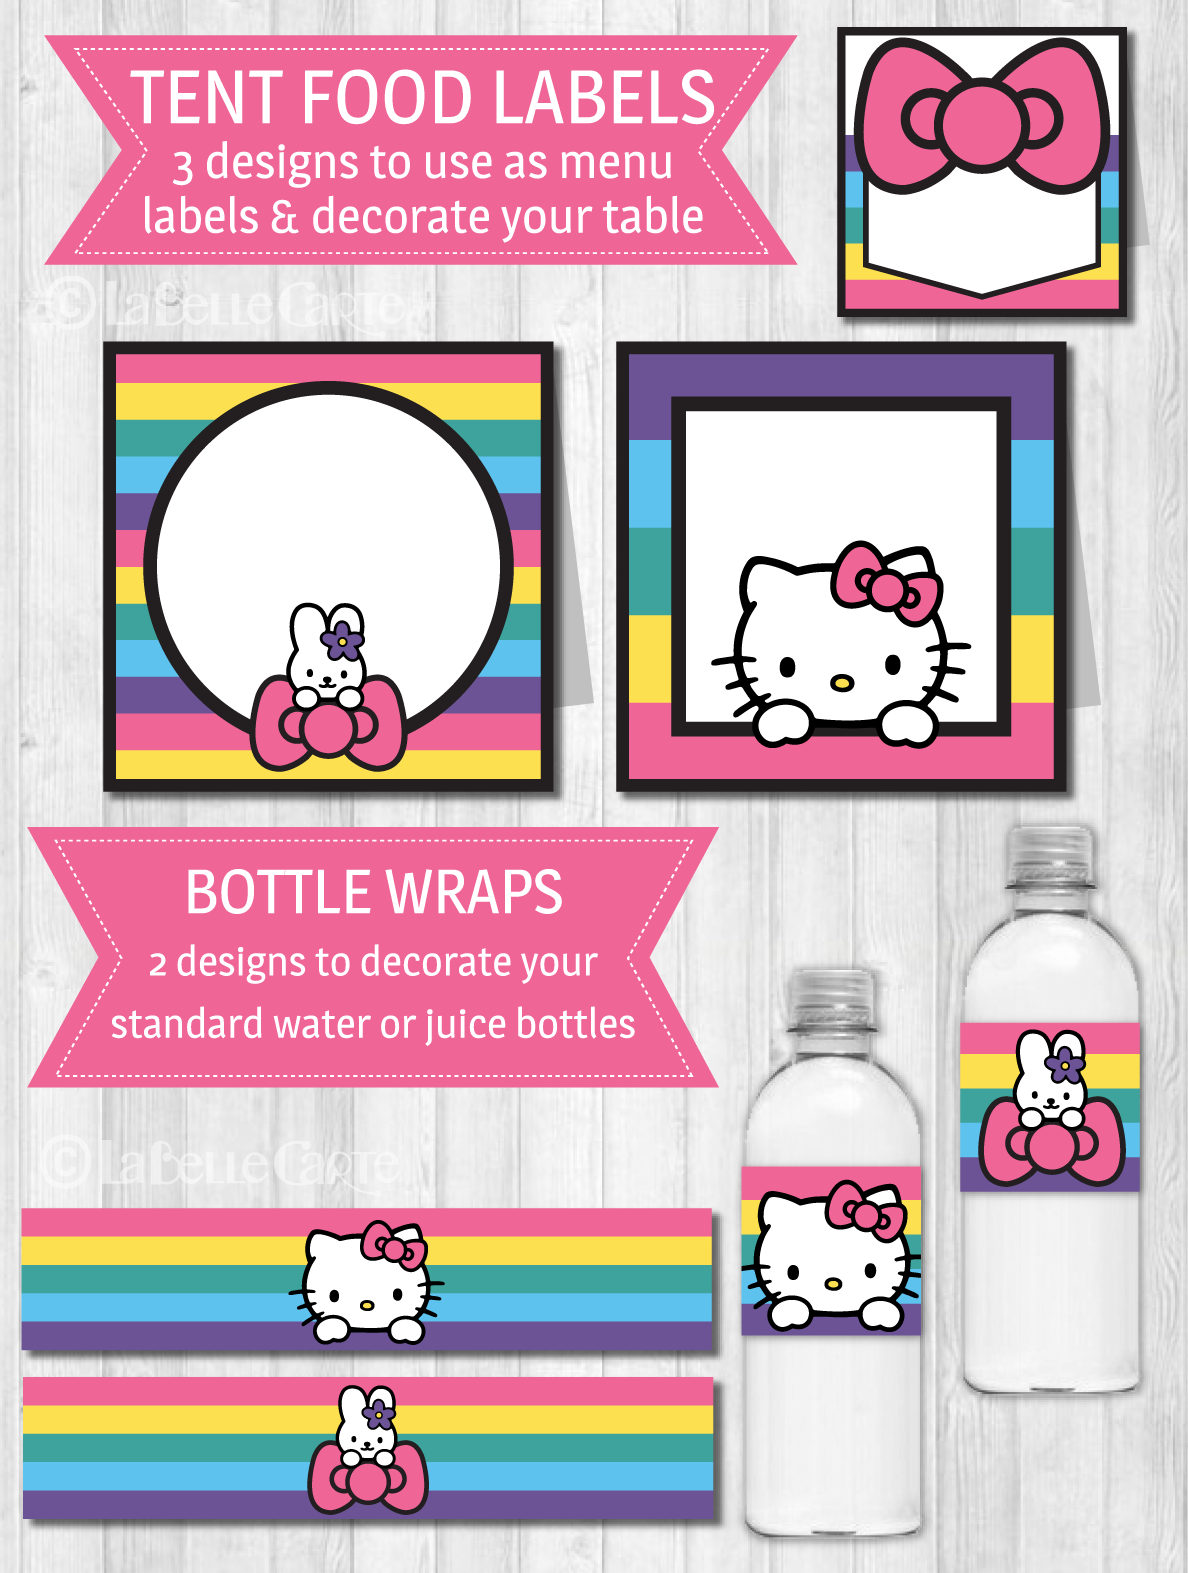 Transparent hello kitty bow clipart - Hello Kitty Party Decor Pack - Hello Kitty Happy Birthday Letter Banner Printable